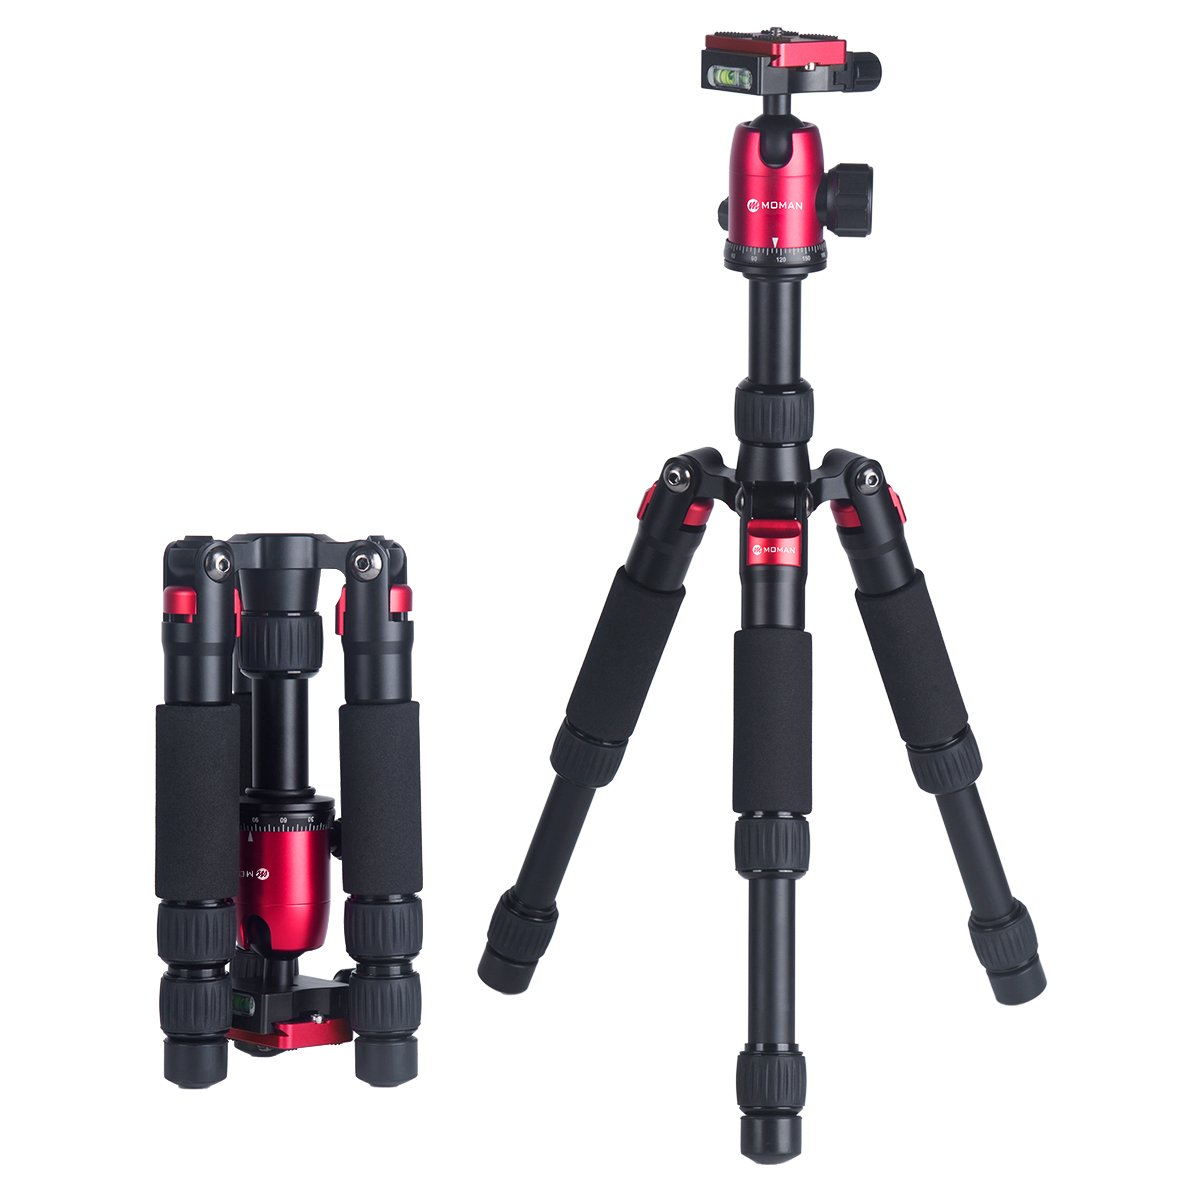 """Portable Mini Compact Tabletop Tripod 20"""" for Macro Photography with 360 Degree Ball Head and Carrying Bag for DSLR Cameras up to 22 lbs, Moman DT-02 … Moman DT--02"""